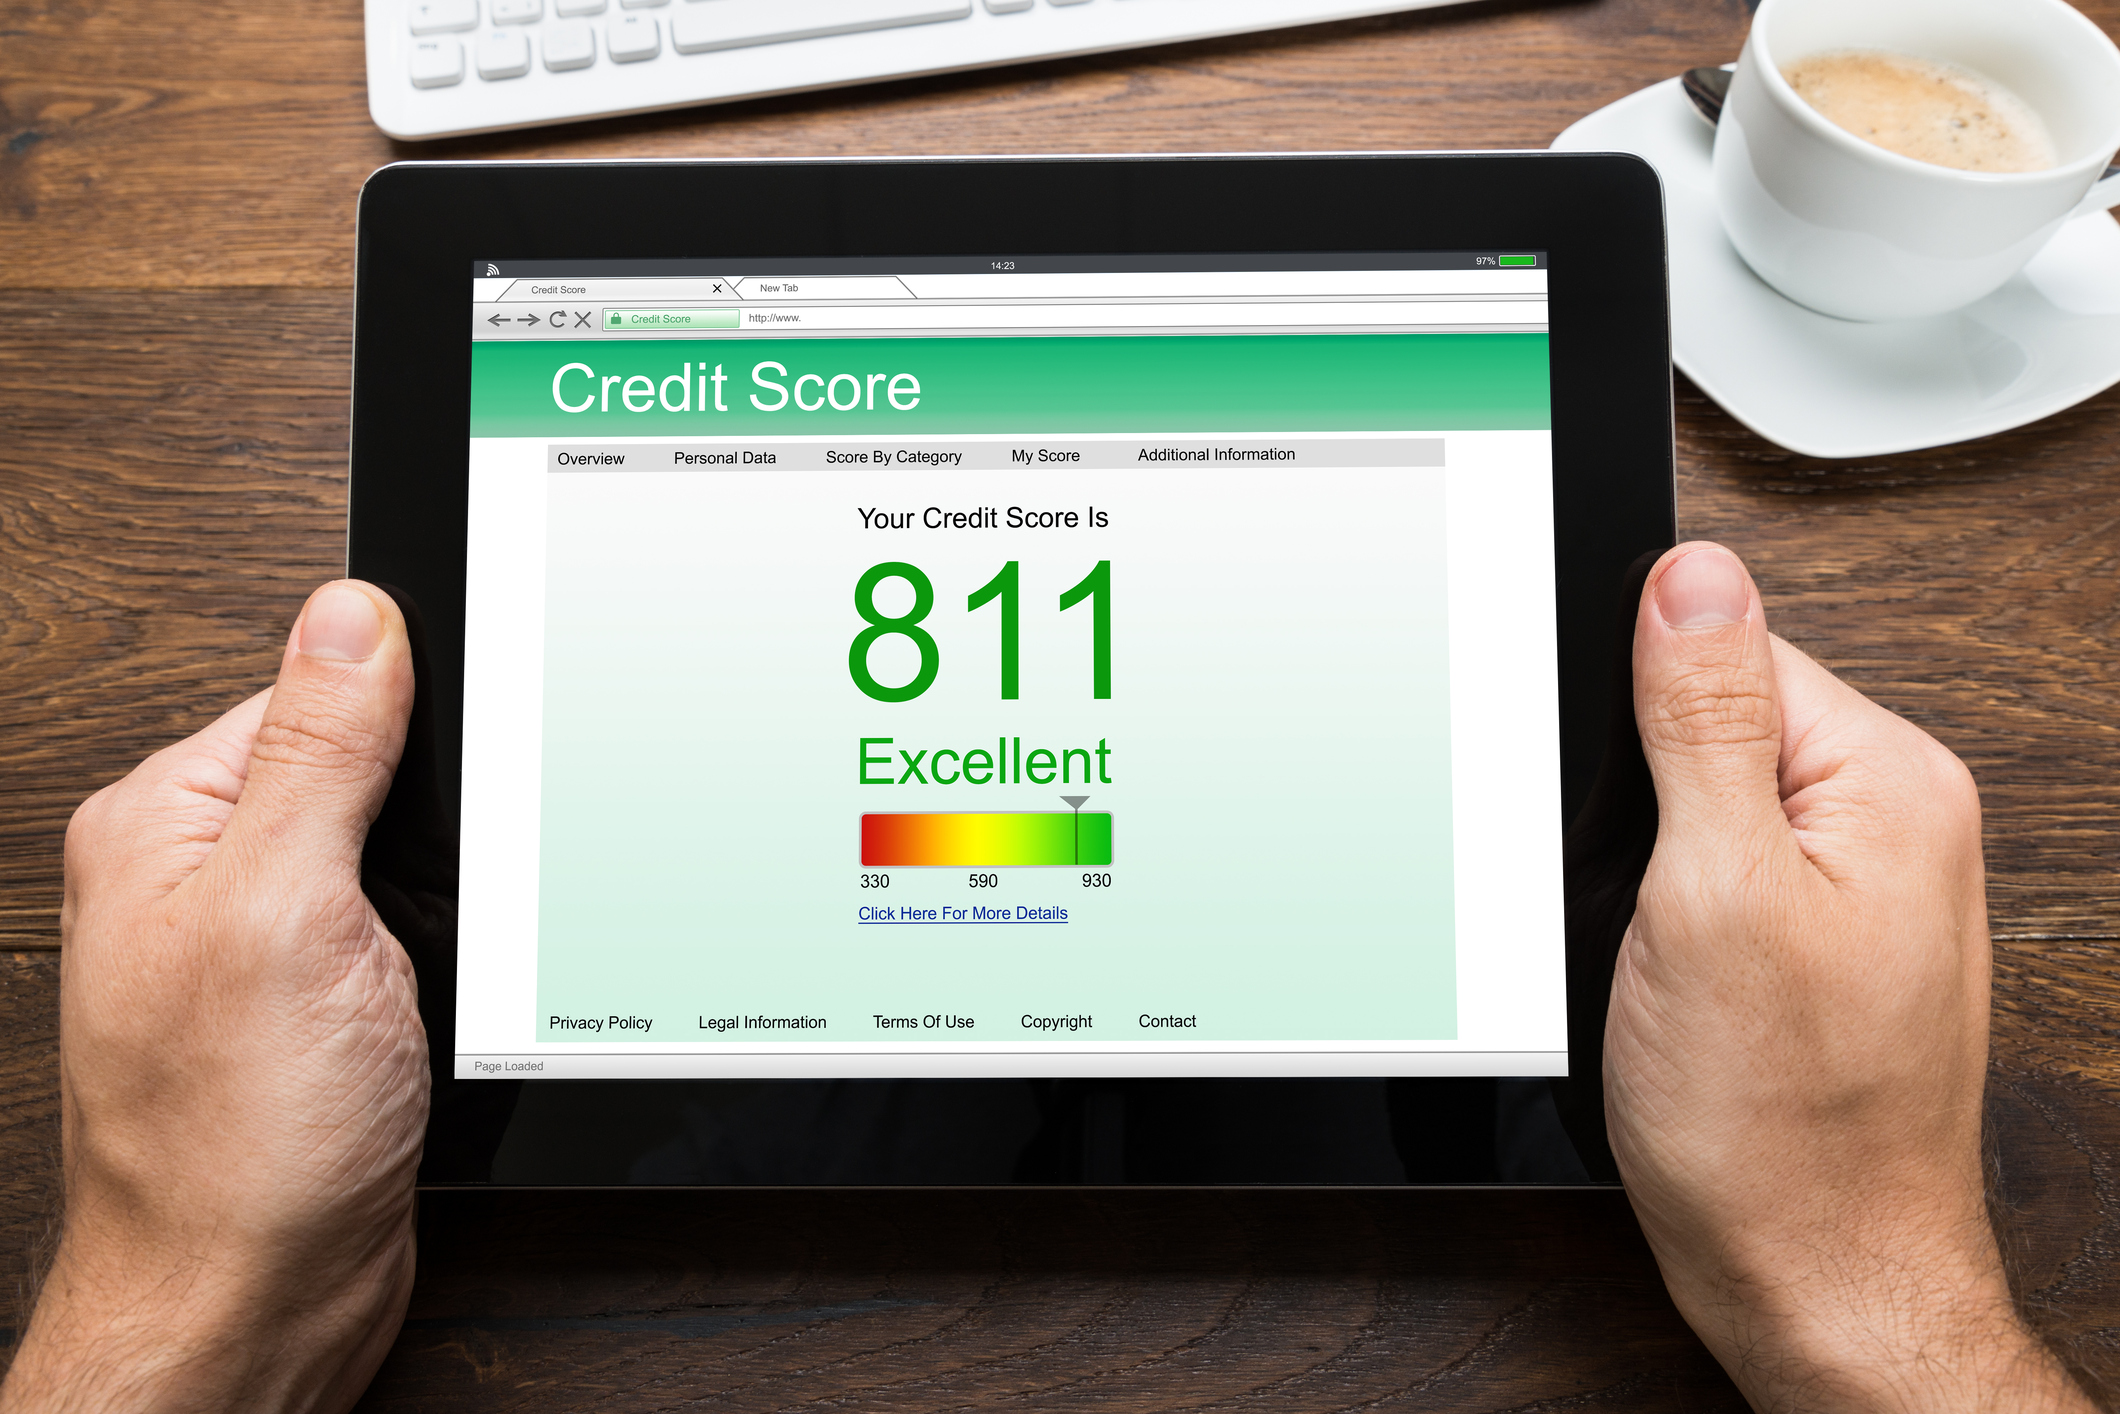 Hands holding a tablet with an 811 credit score displayed on it.